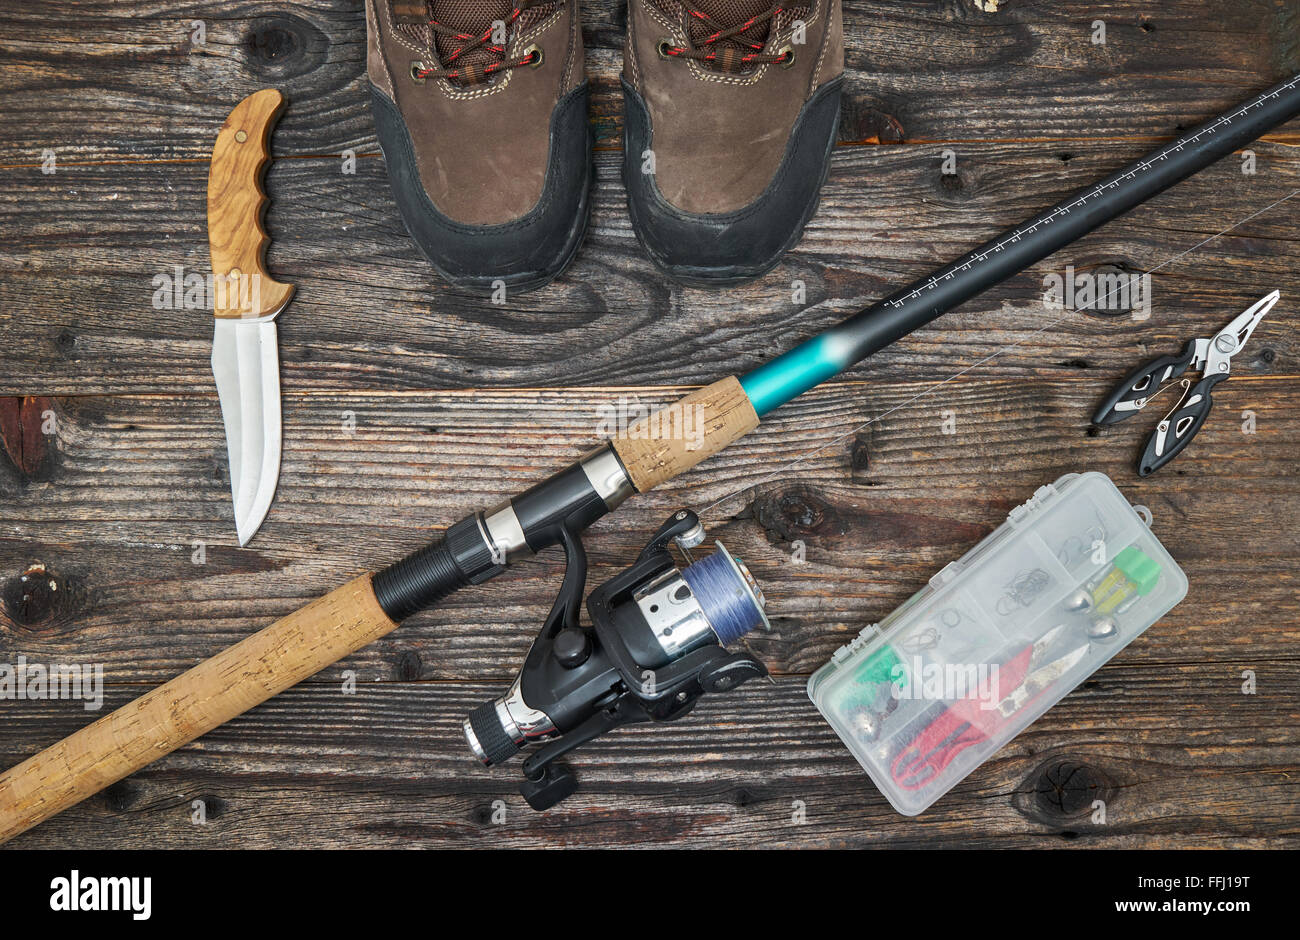 fishing tackles and fishing gear on wooden background, top view - Stock Image